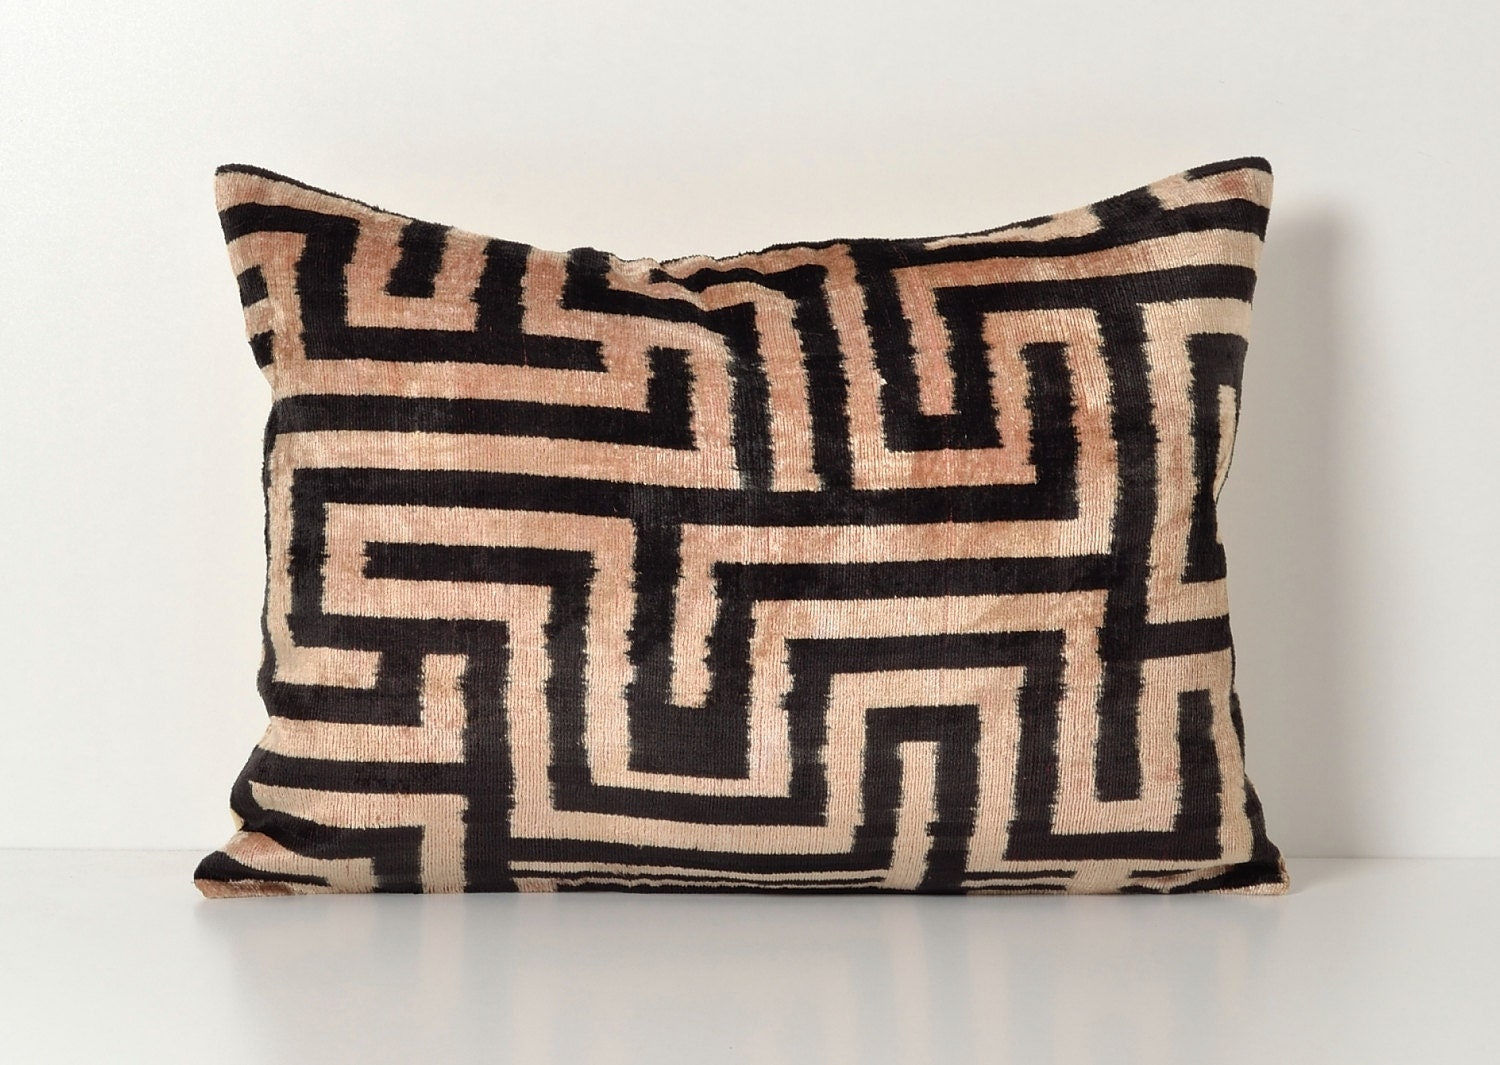 Black Ikat Pillow Ikat Pillows Couch Pillow by pillowme on Etsy